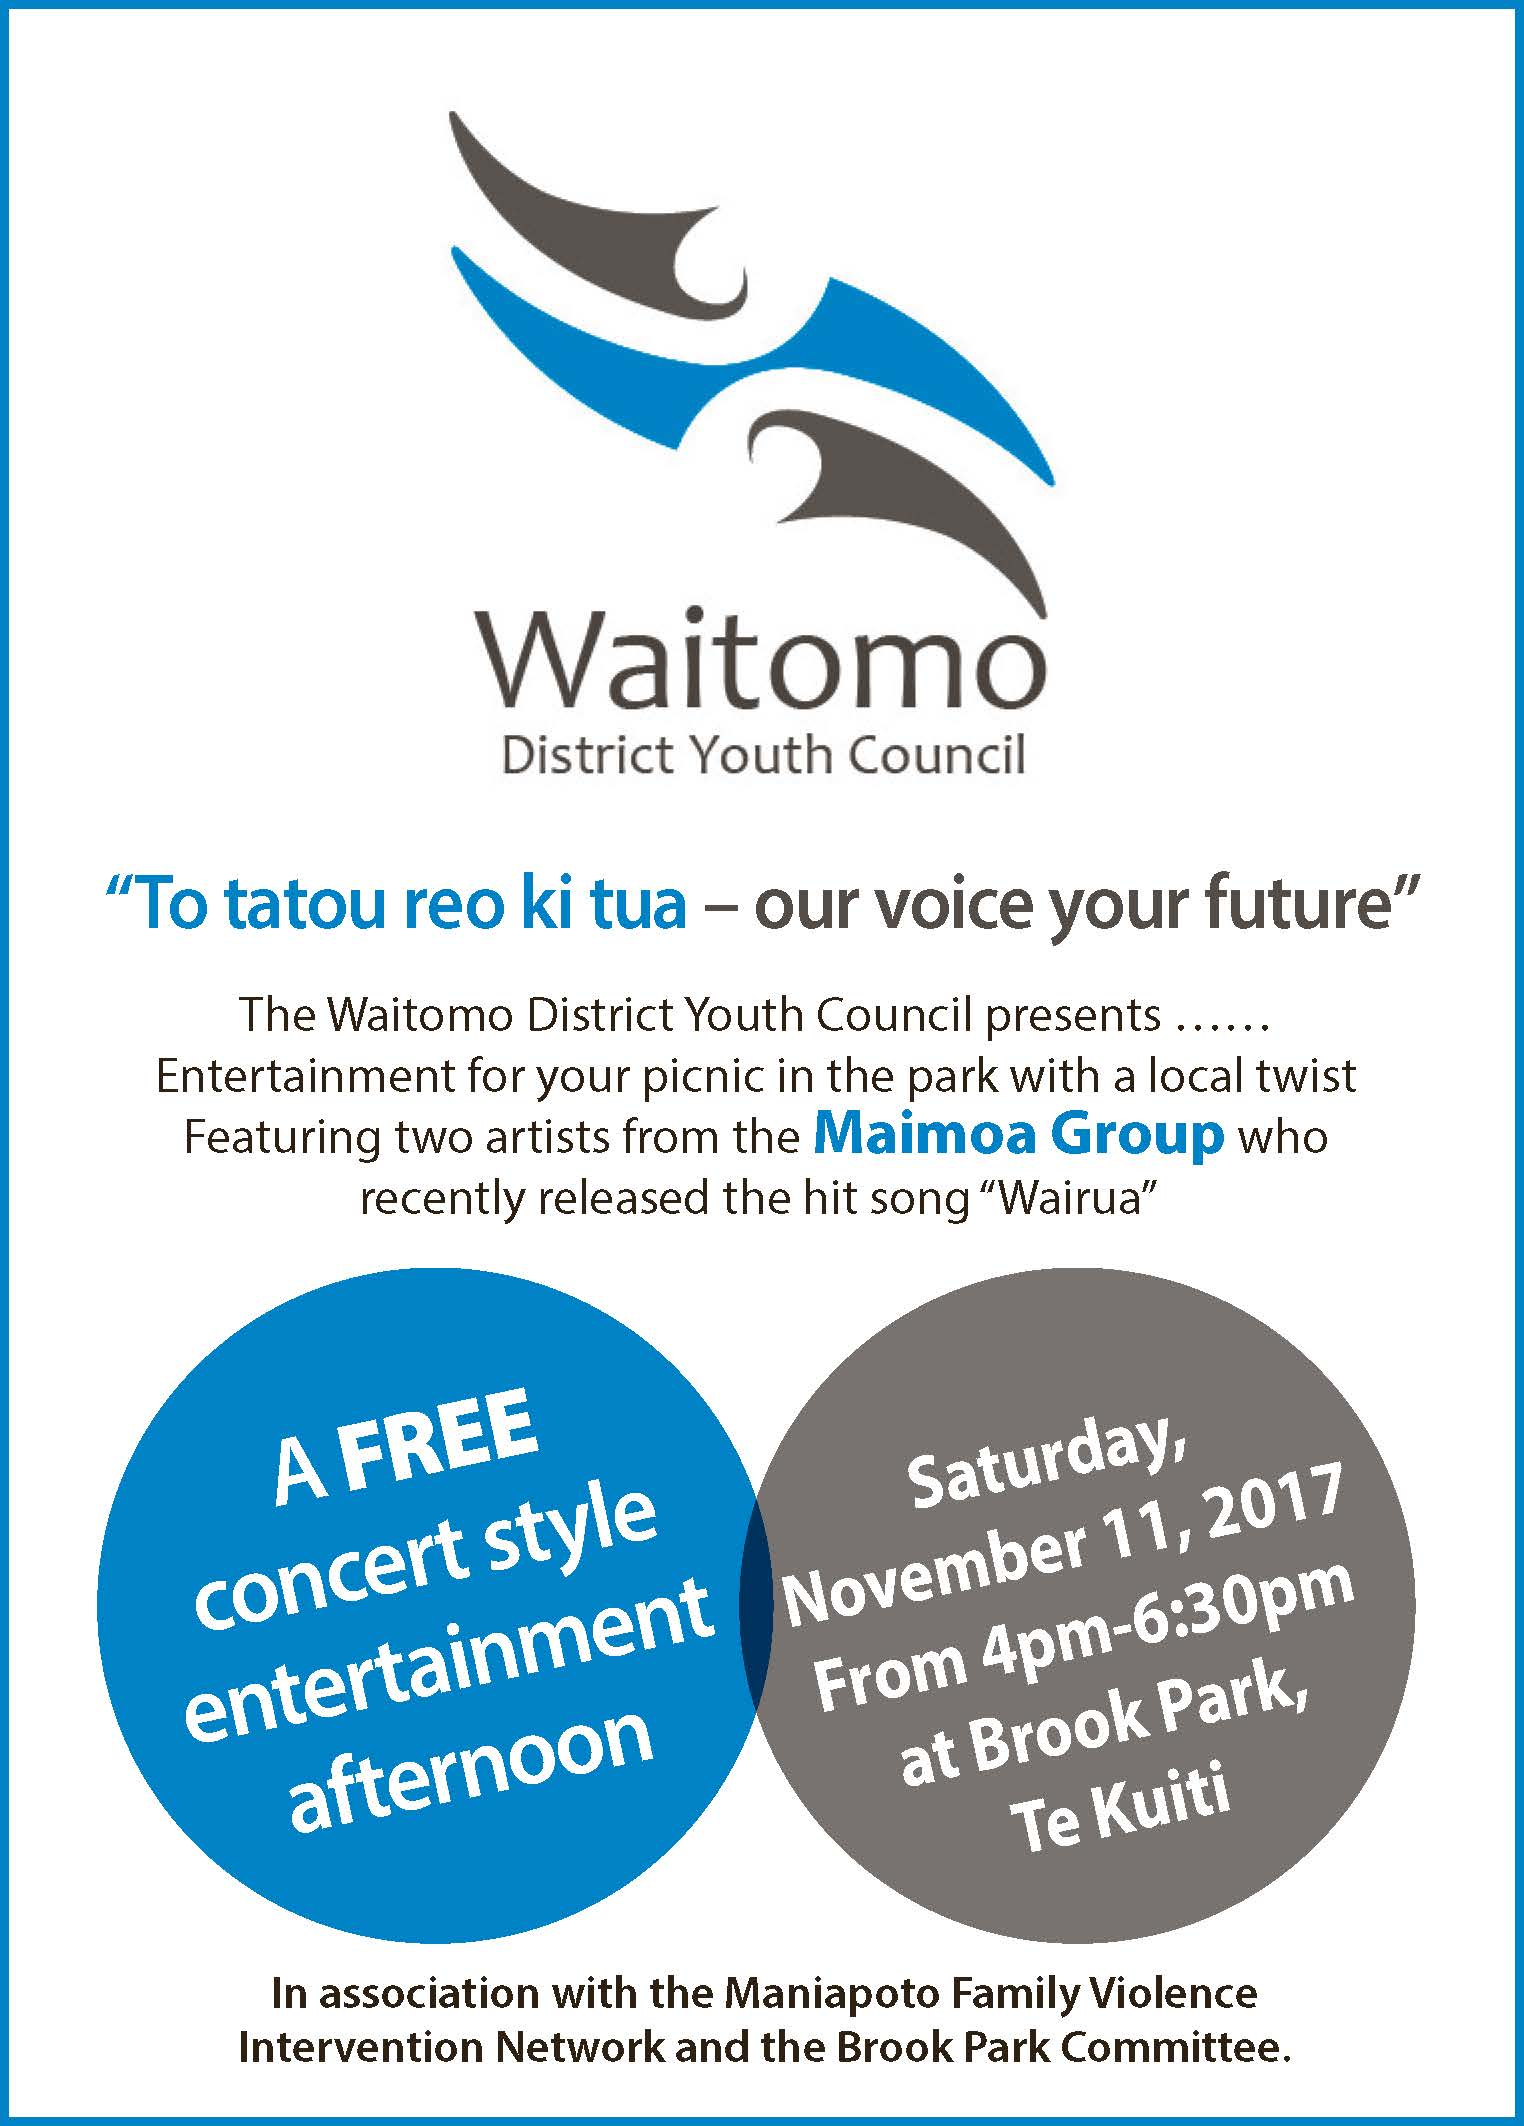 Waitomo District Youth Council 2017 entertainment afternoon